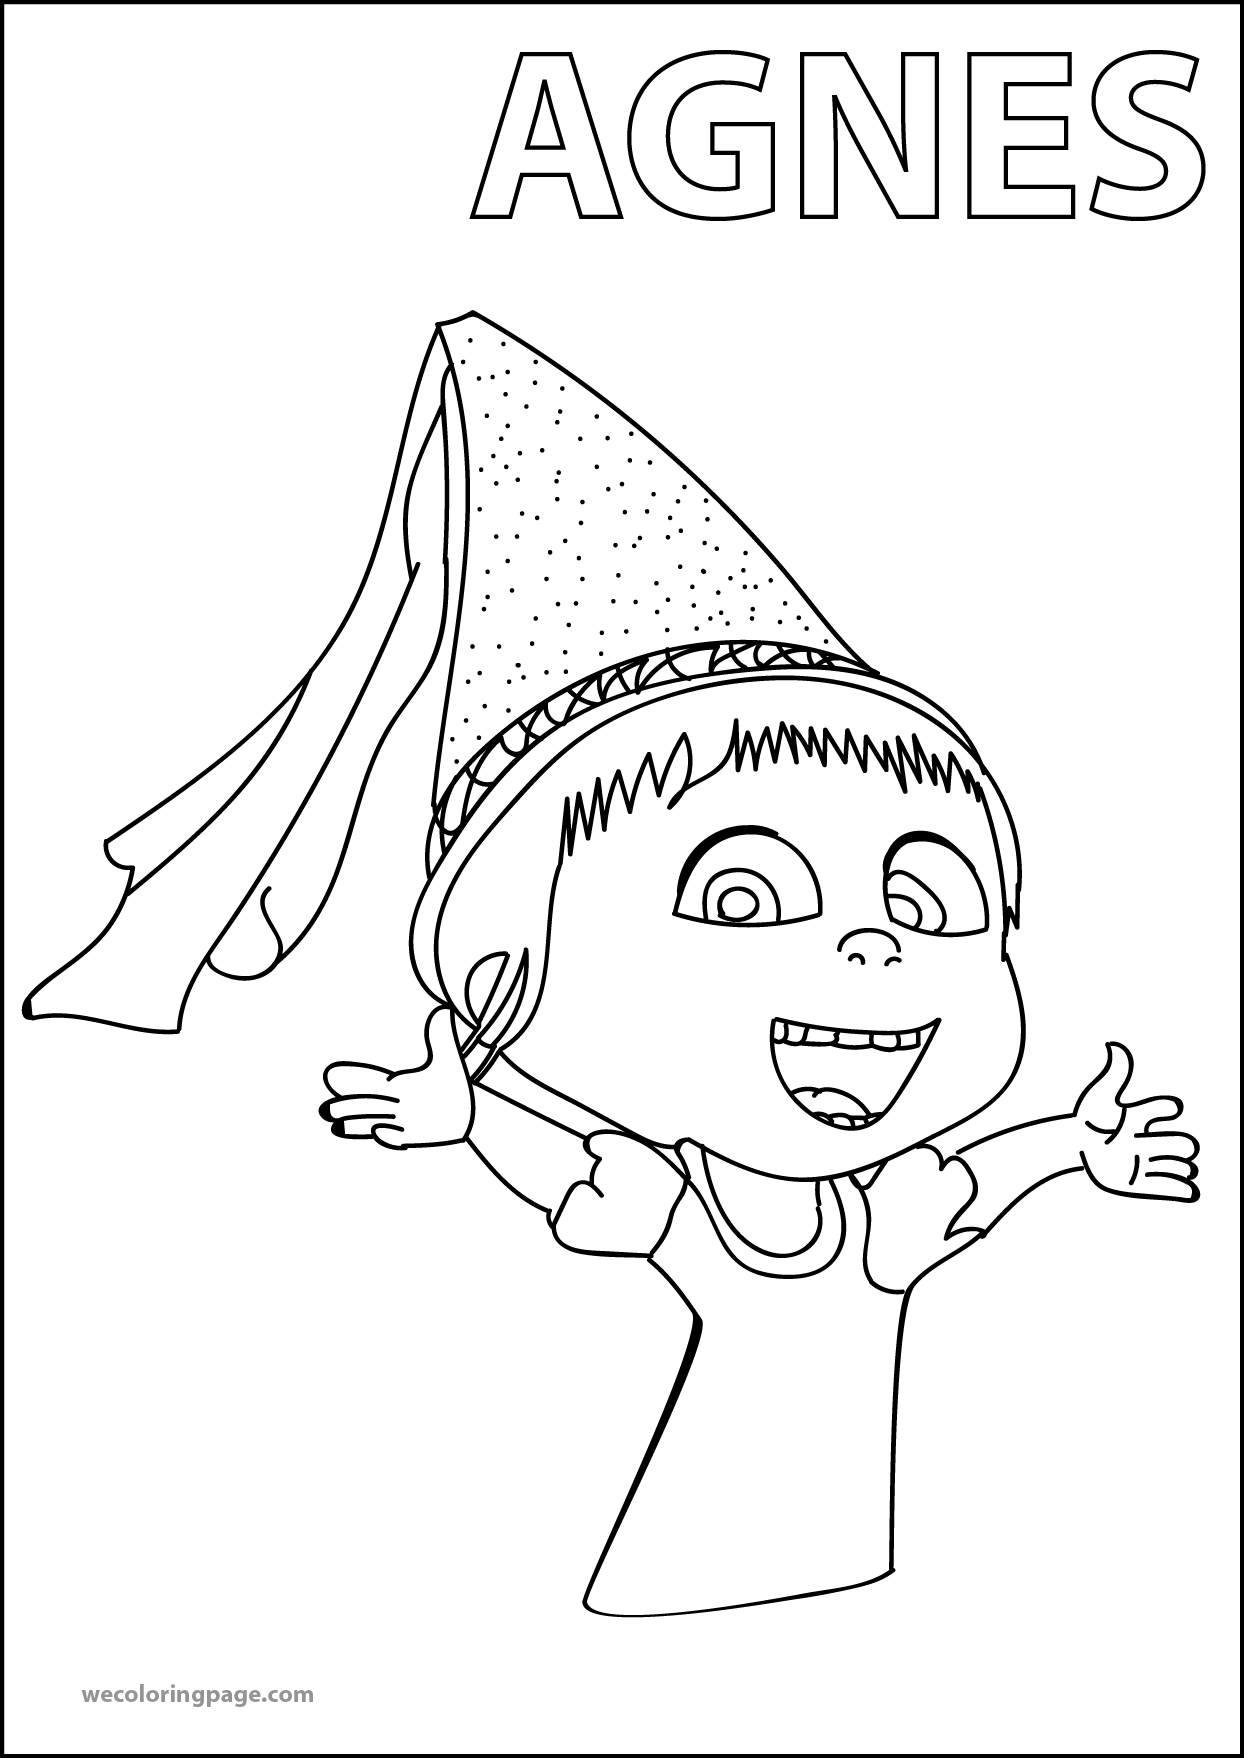 Agnes Despicable Me 2 Happy Coloring Page